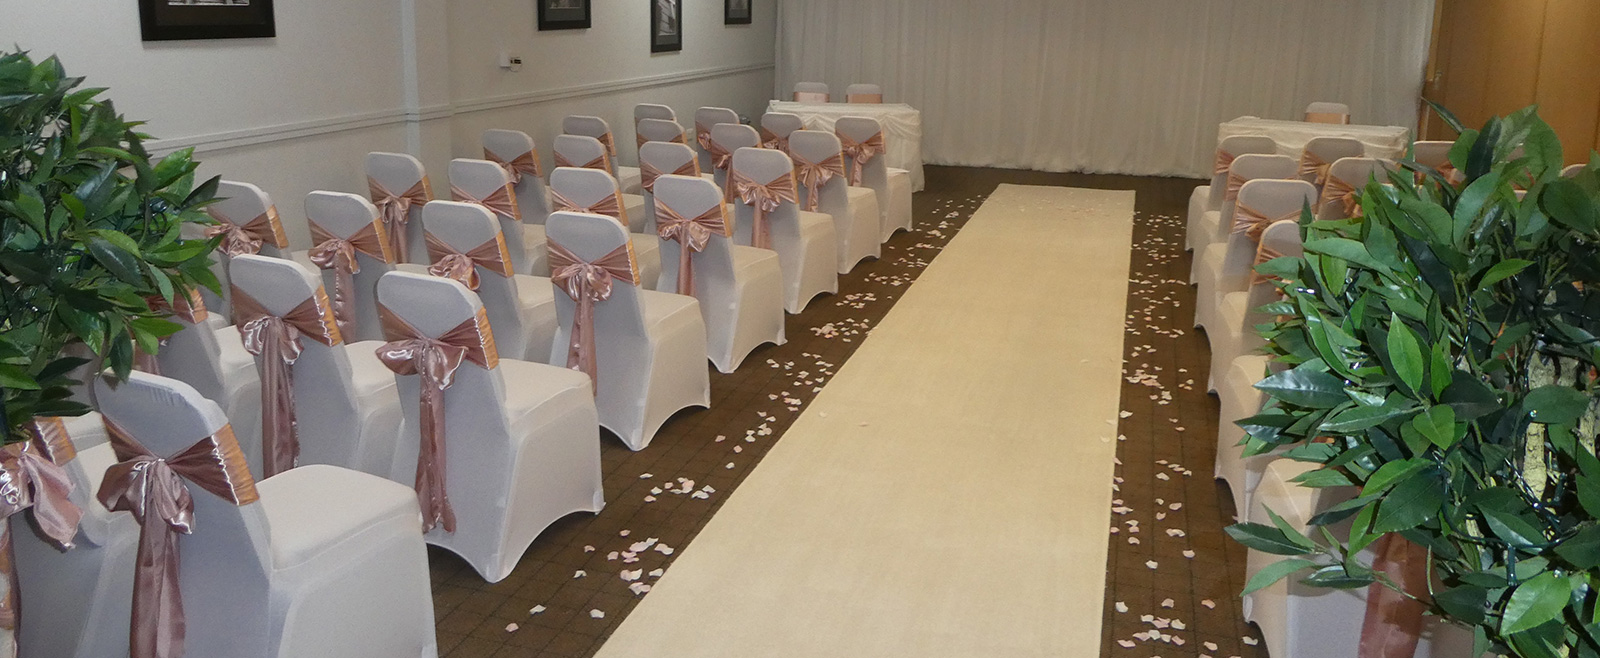 Wedding Venue Styling - Carpet Aisle Runners